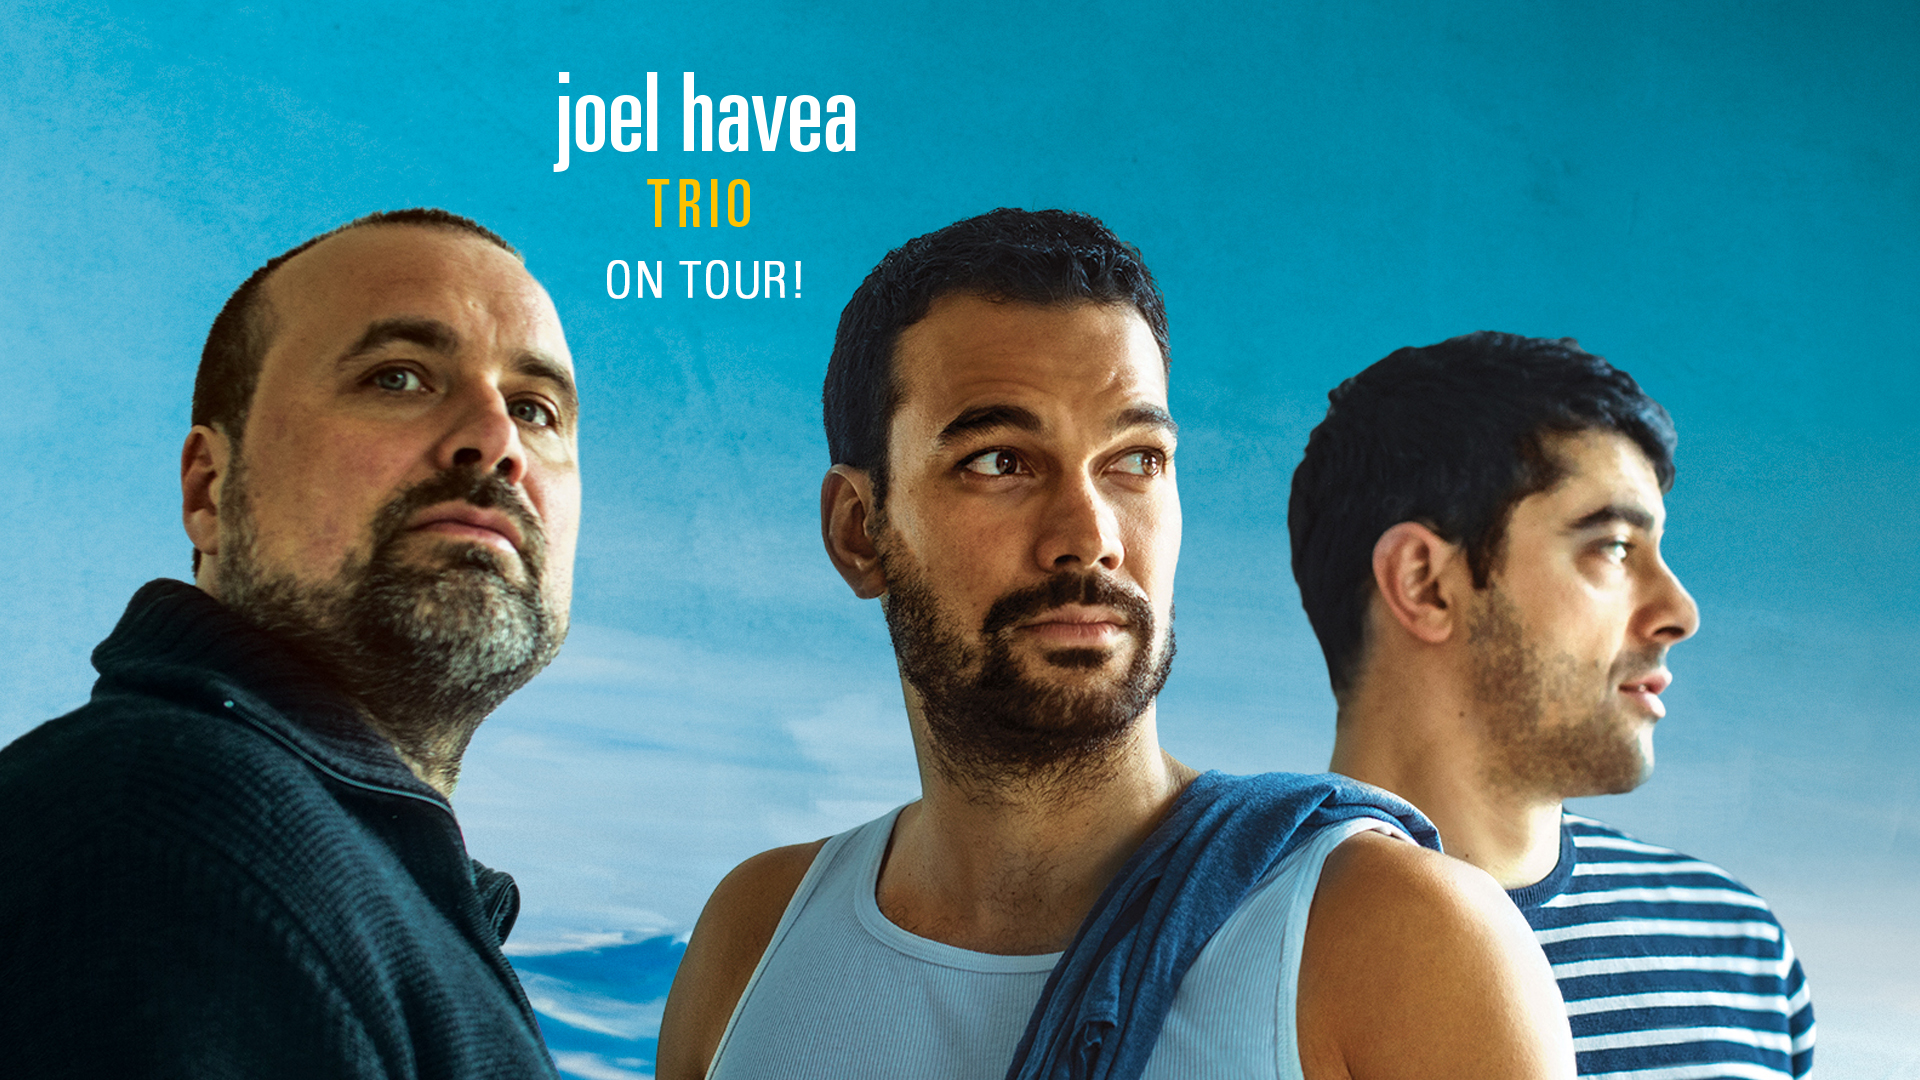 DO 05.03.2020 JOEL HAVEA TRIO